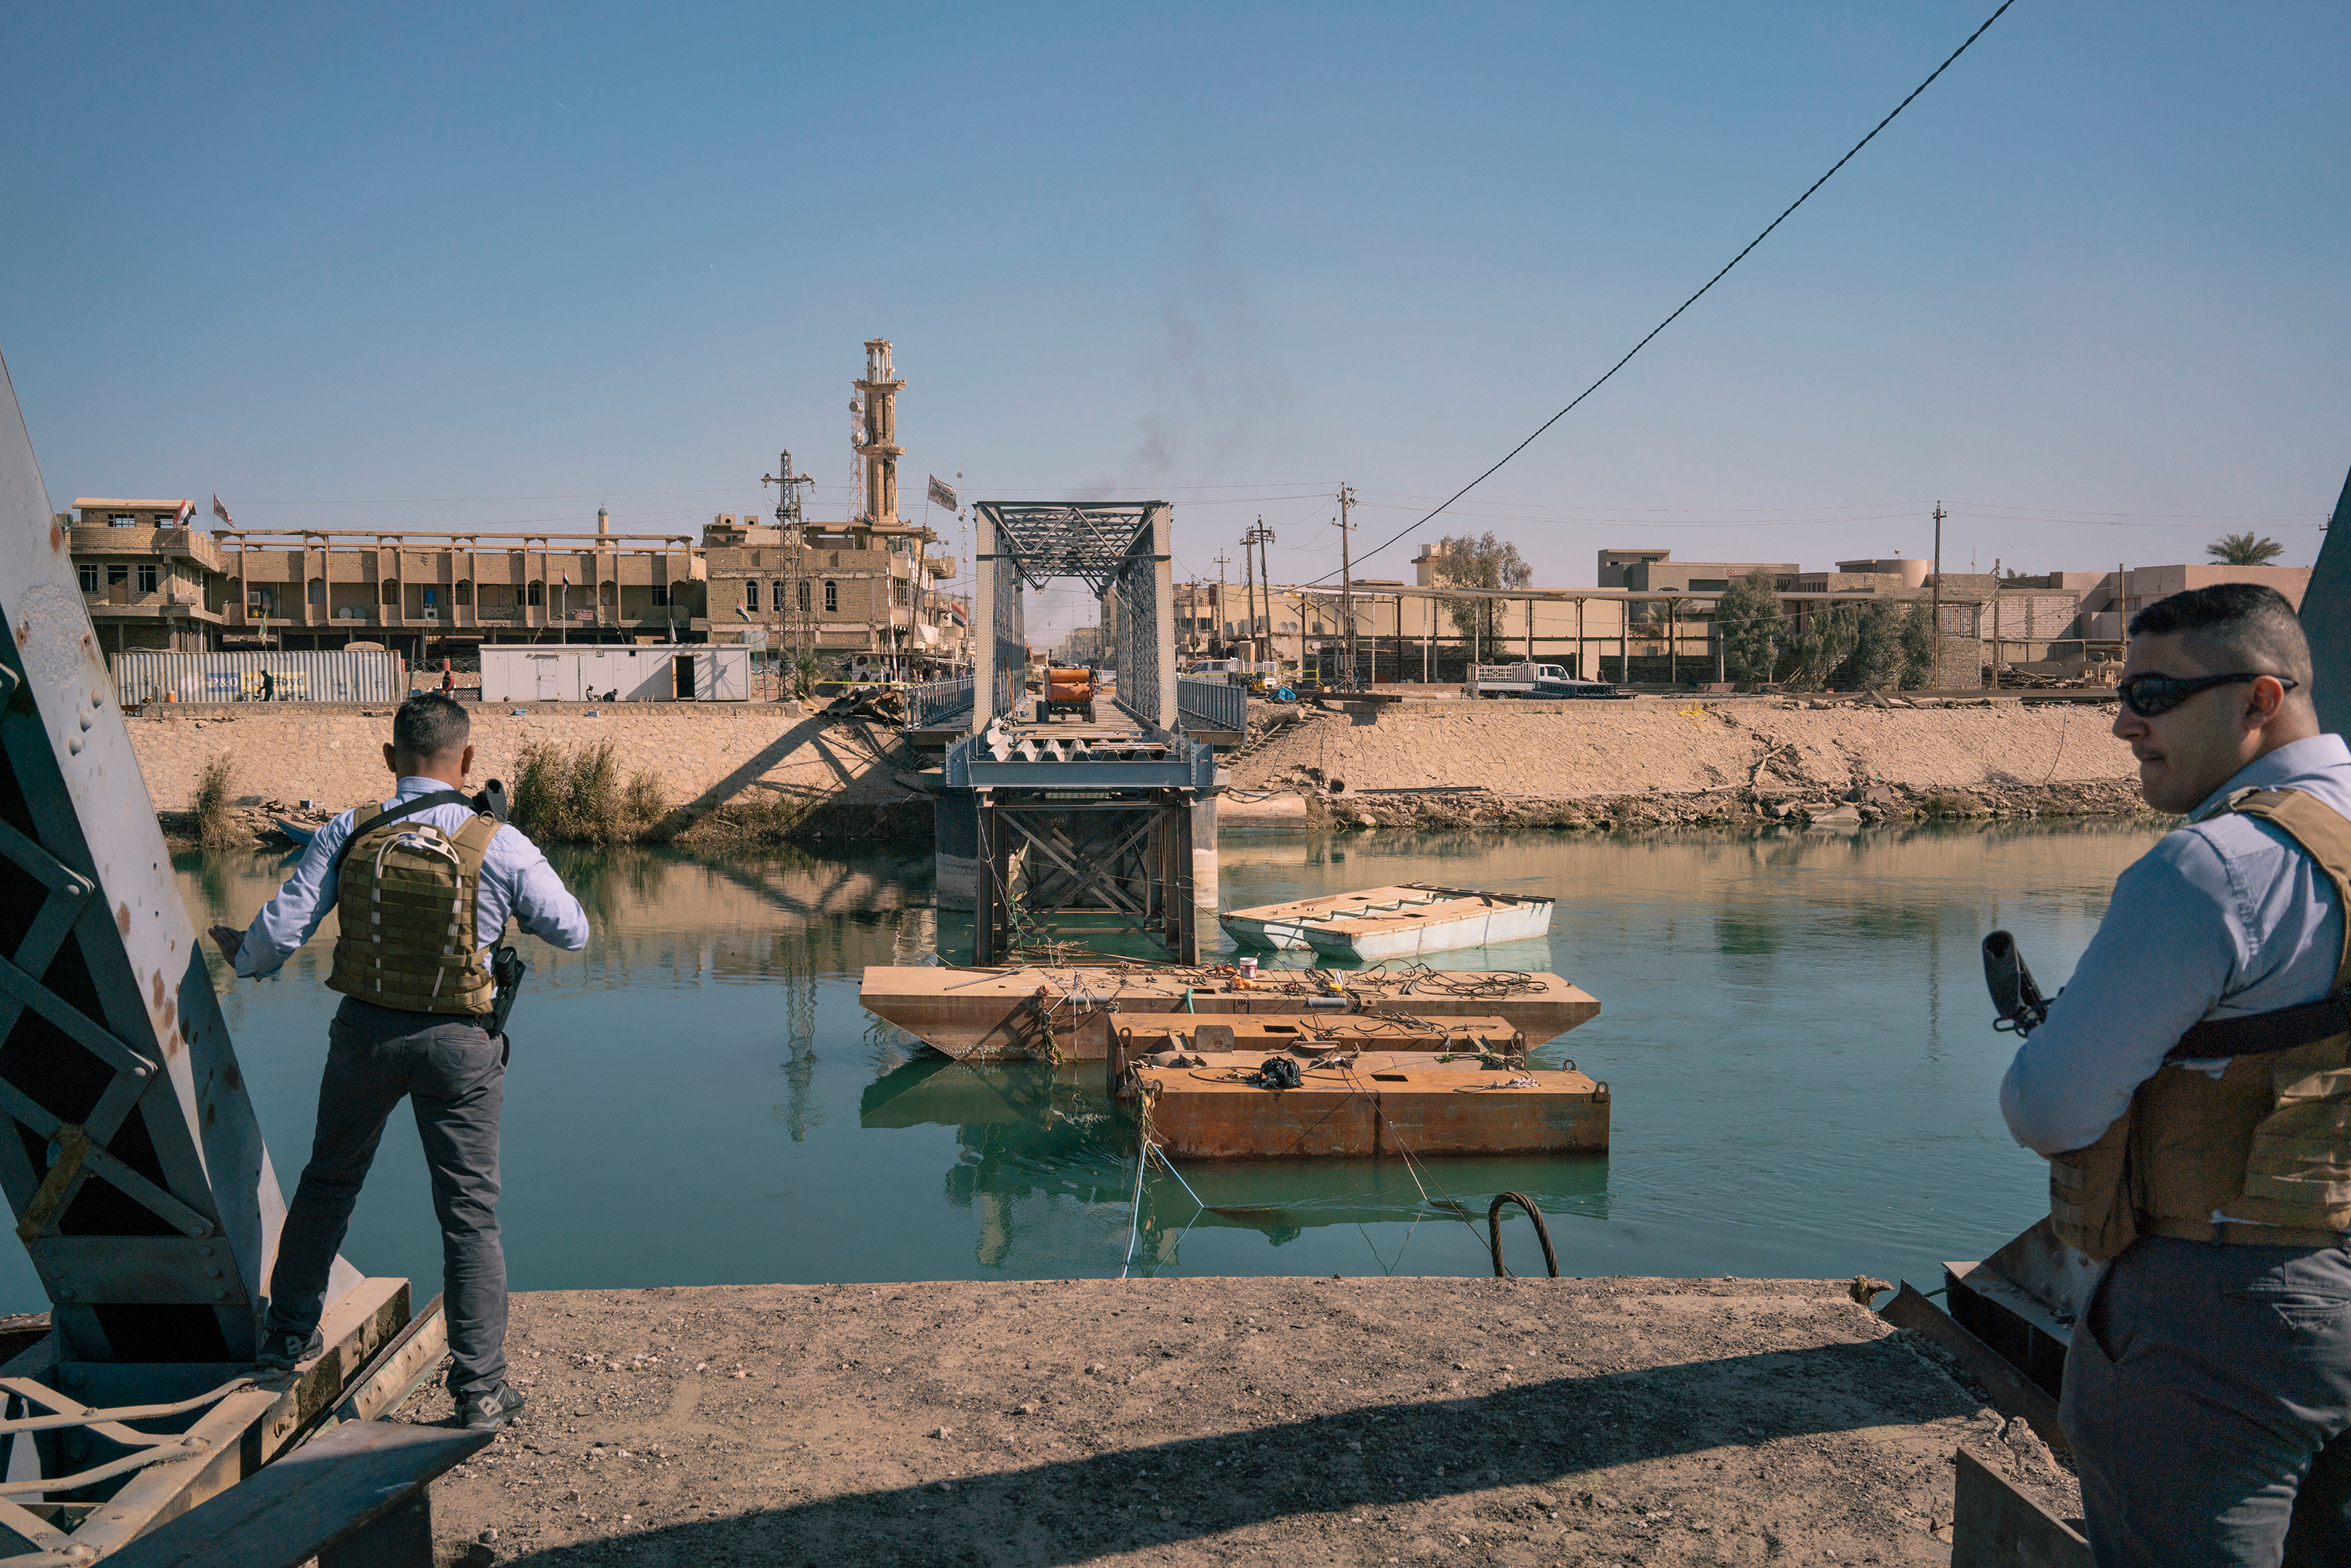 A bridge in Fallujah that was destroyed in a fierce battle between Iraqi forces and ISIS, seen here on Feb. 1.